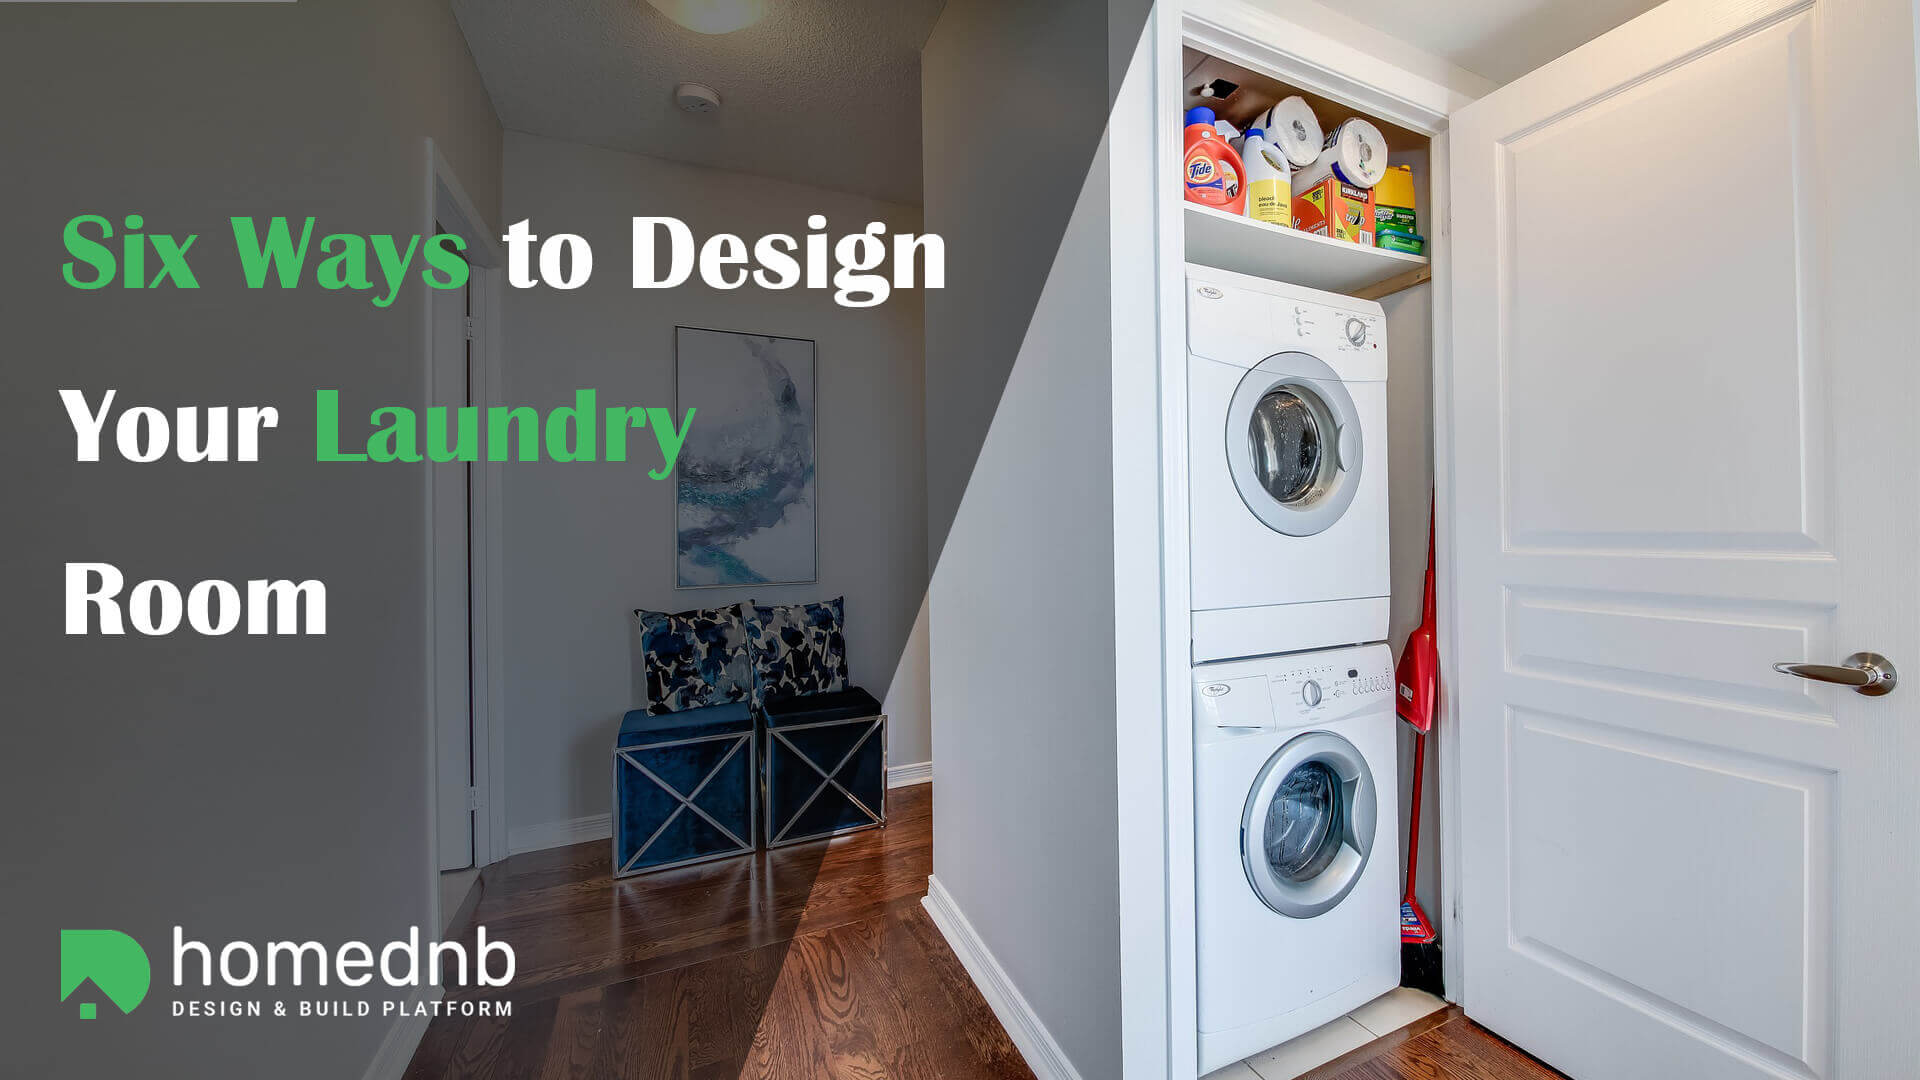 Six Ways to Design Your Laundry Room